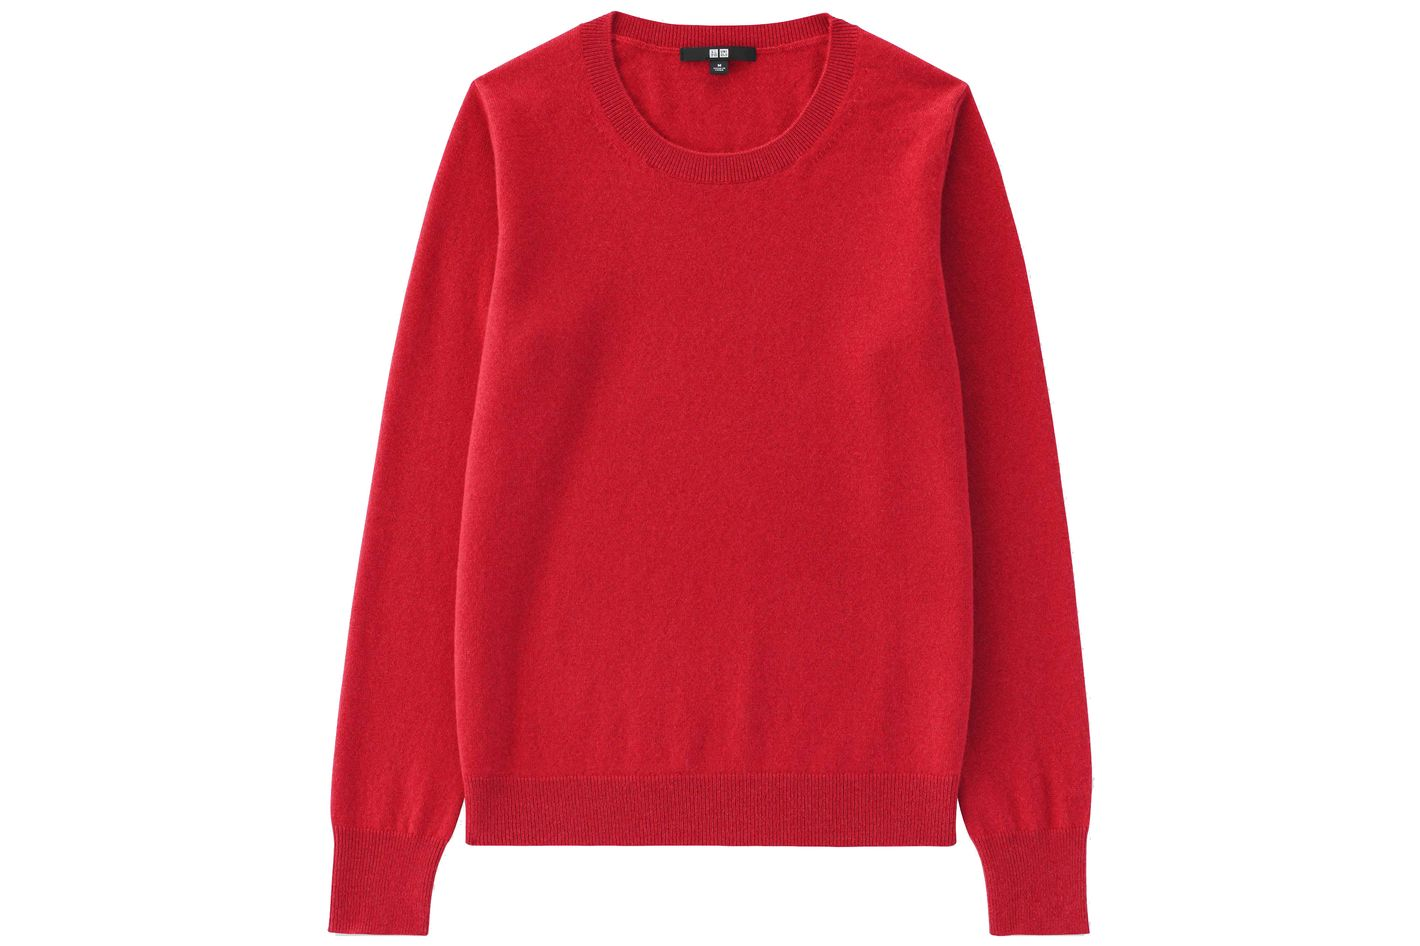 Uniqlo Women's Cashmere Crewneck Sweater